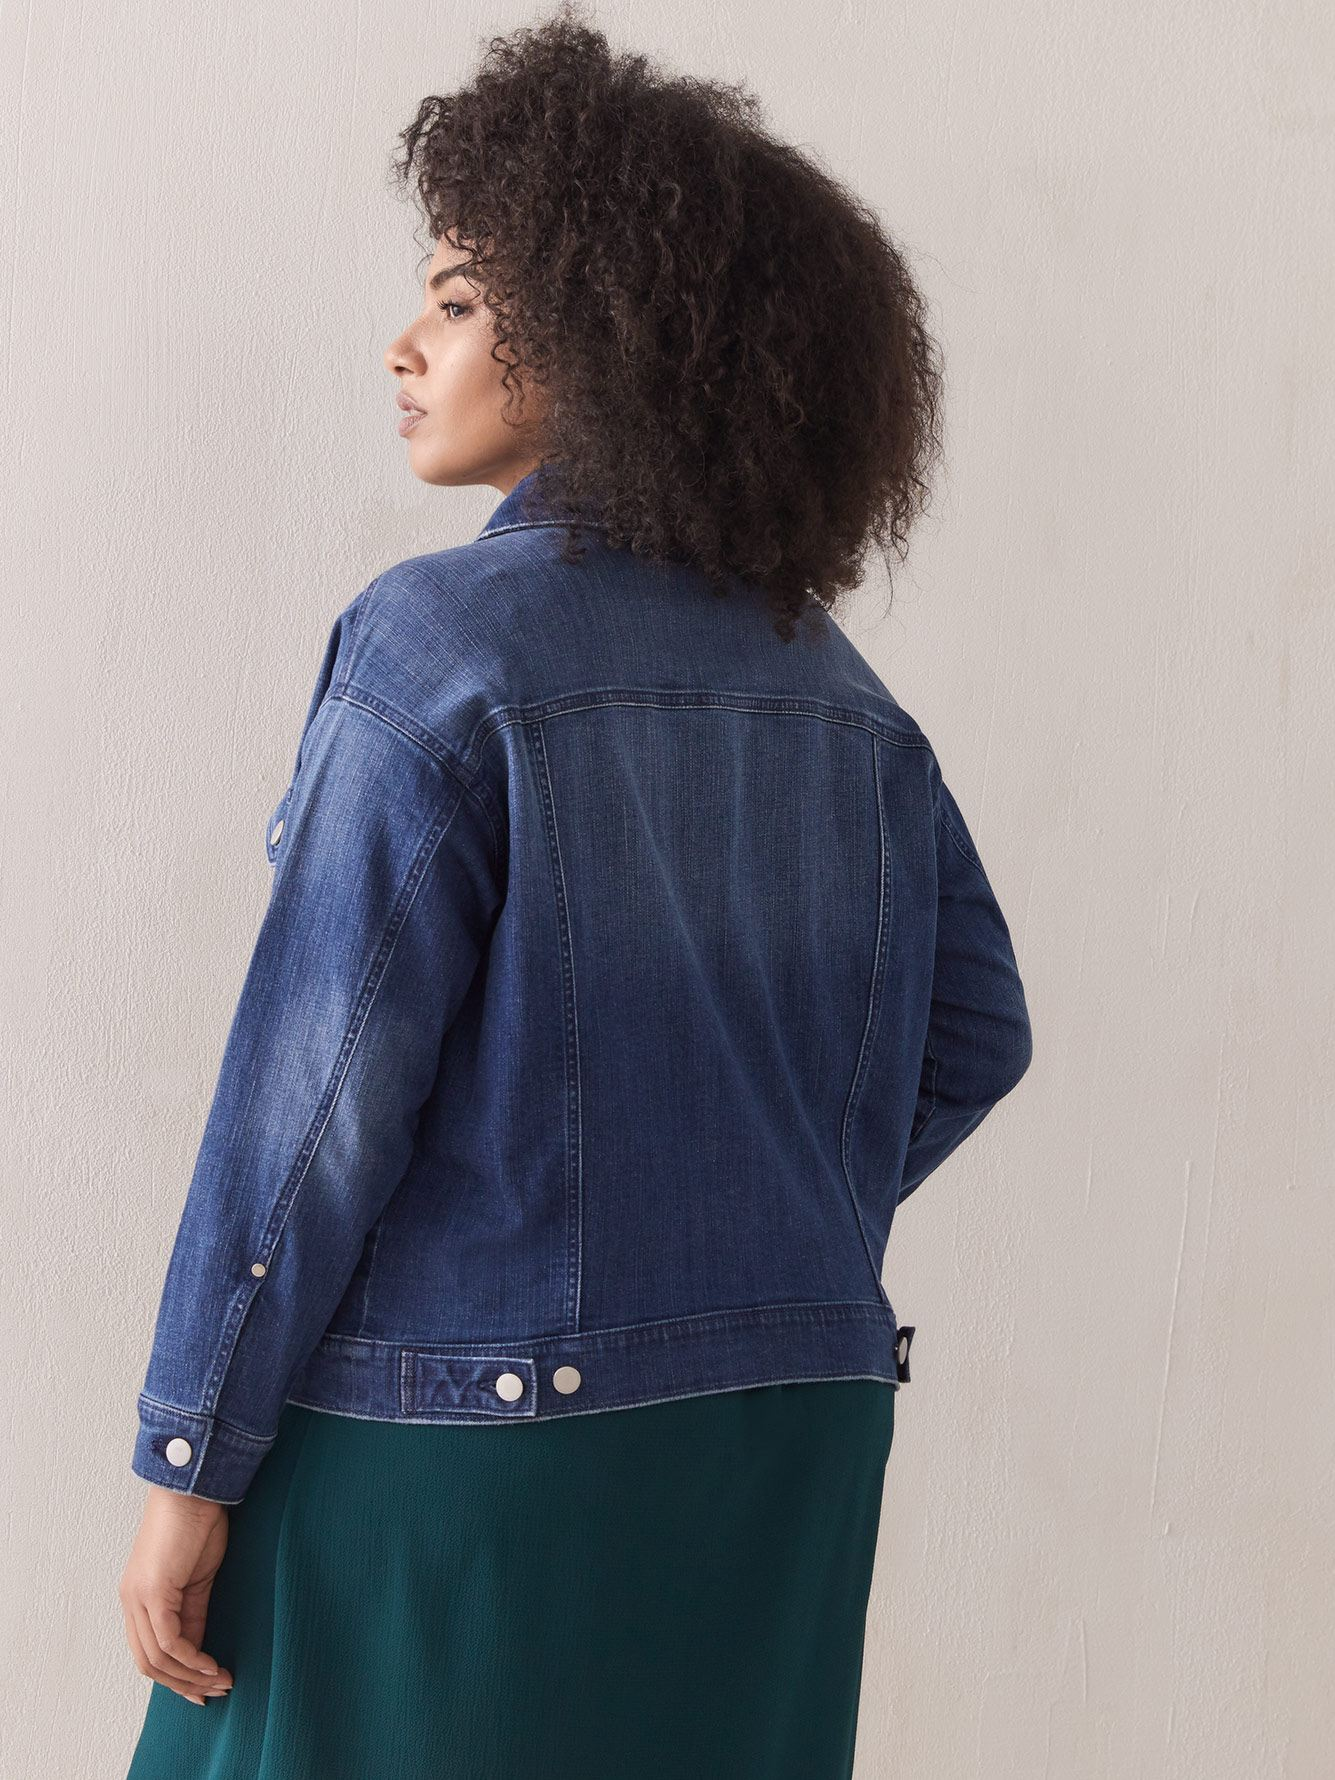 Boyfriend Jean Jacket - Addition Elle